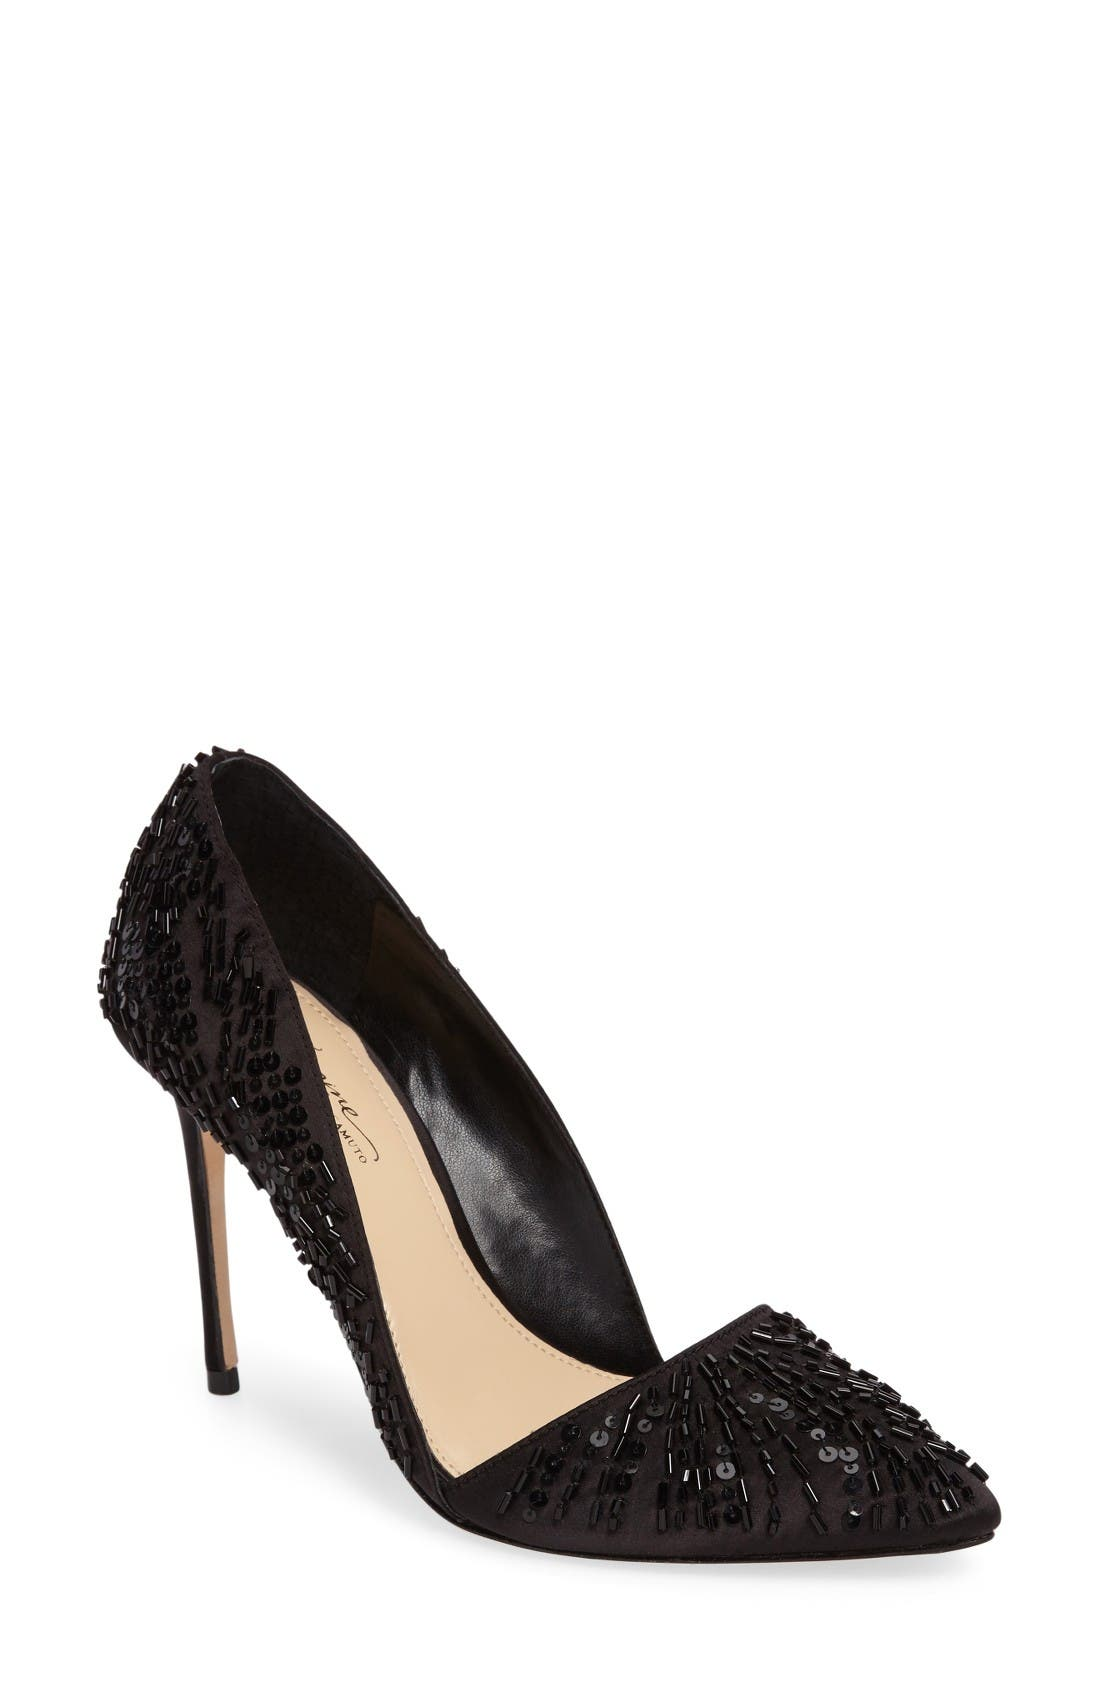 Imagine by Vince Camuto Ova d'Orsay Pump (Women)